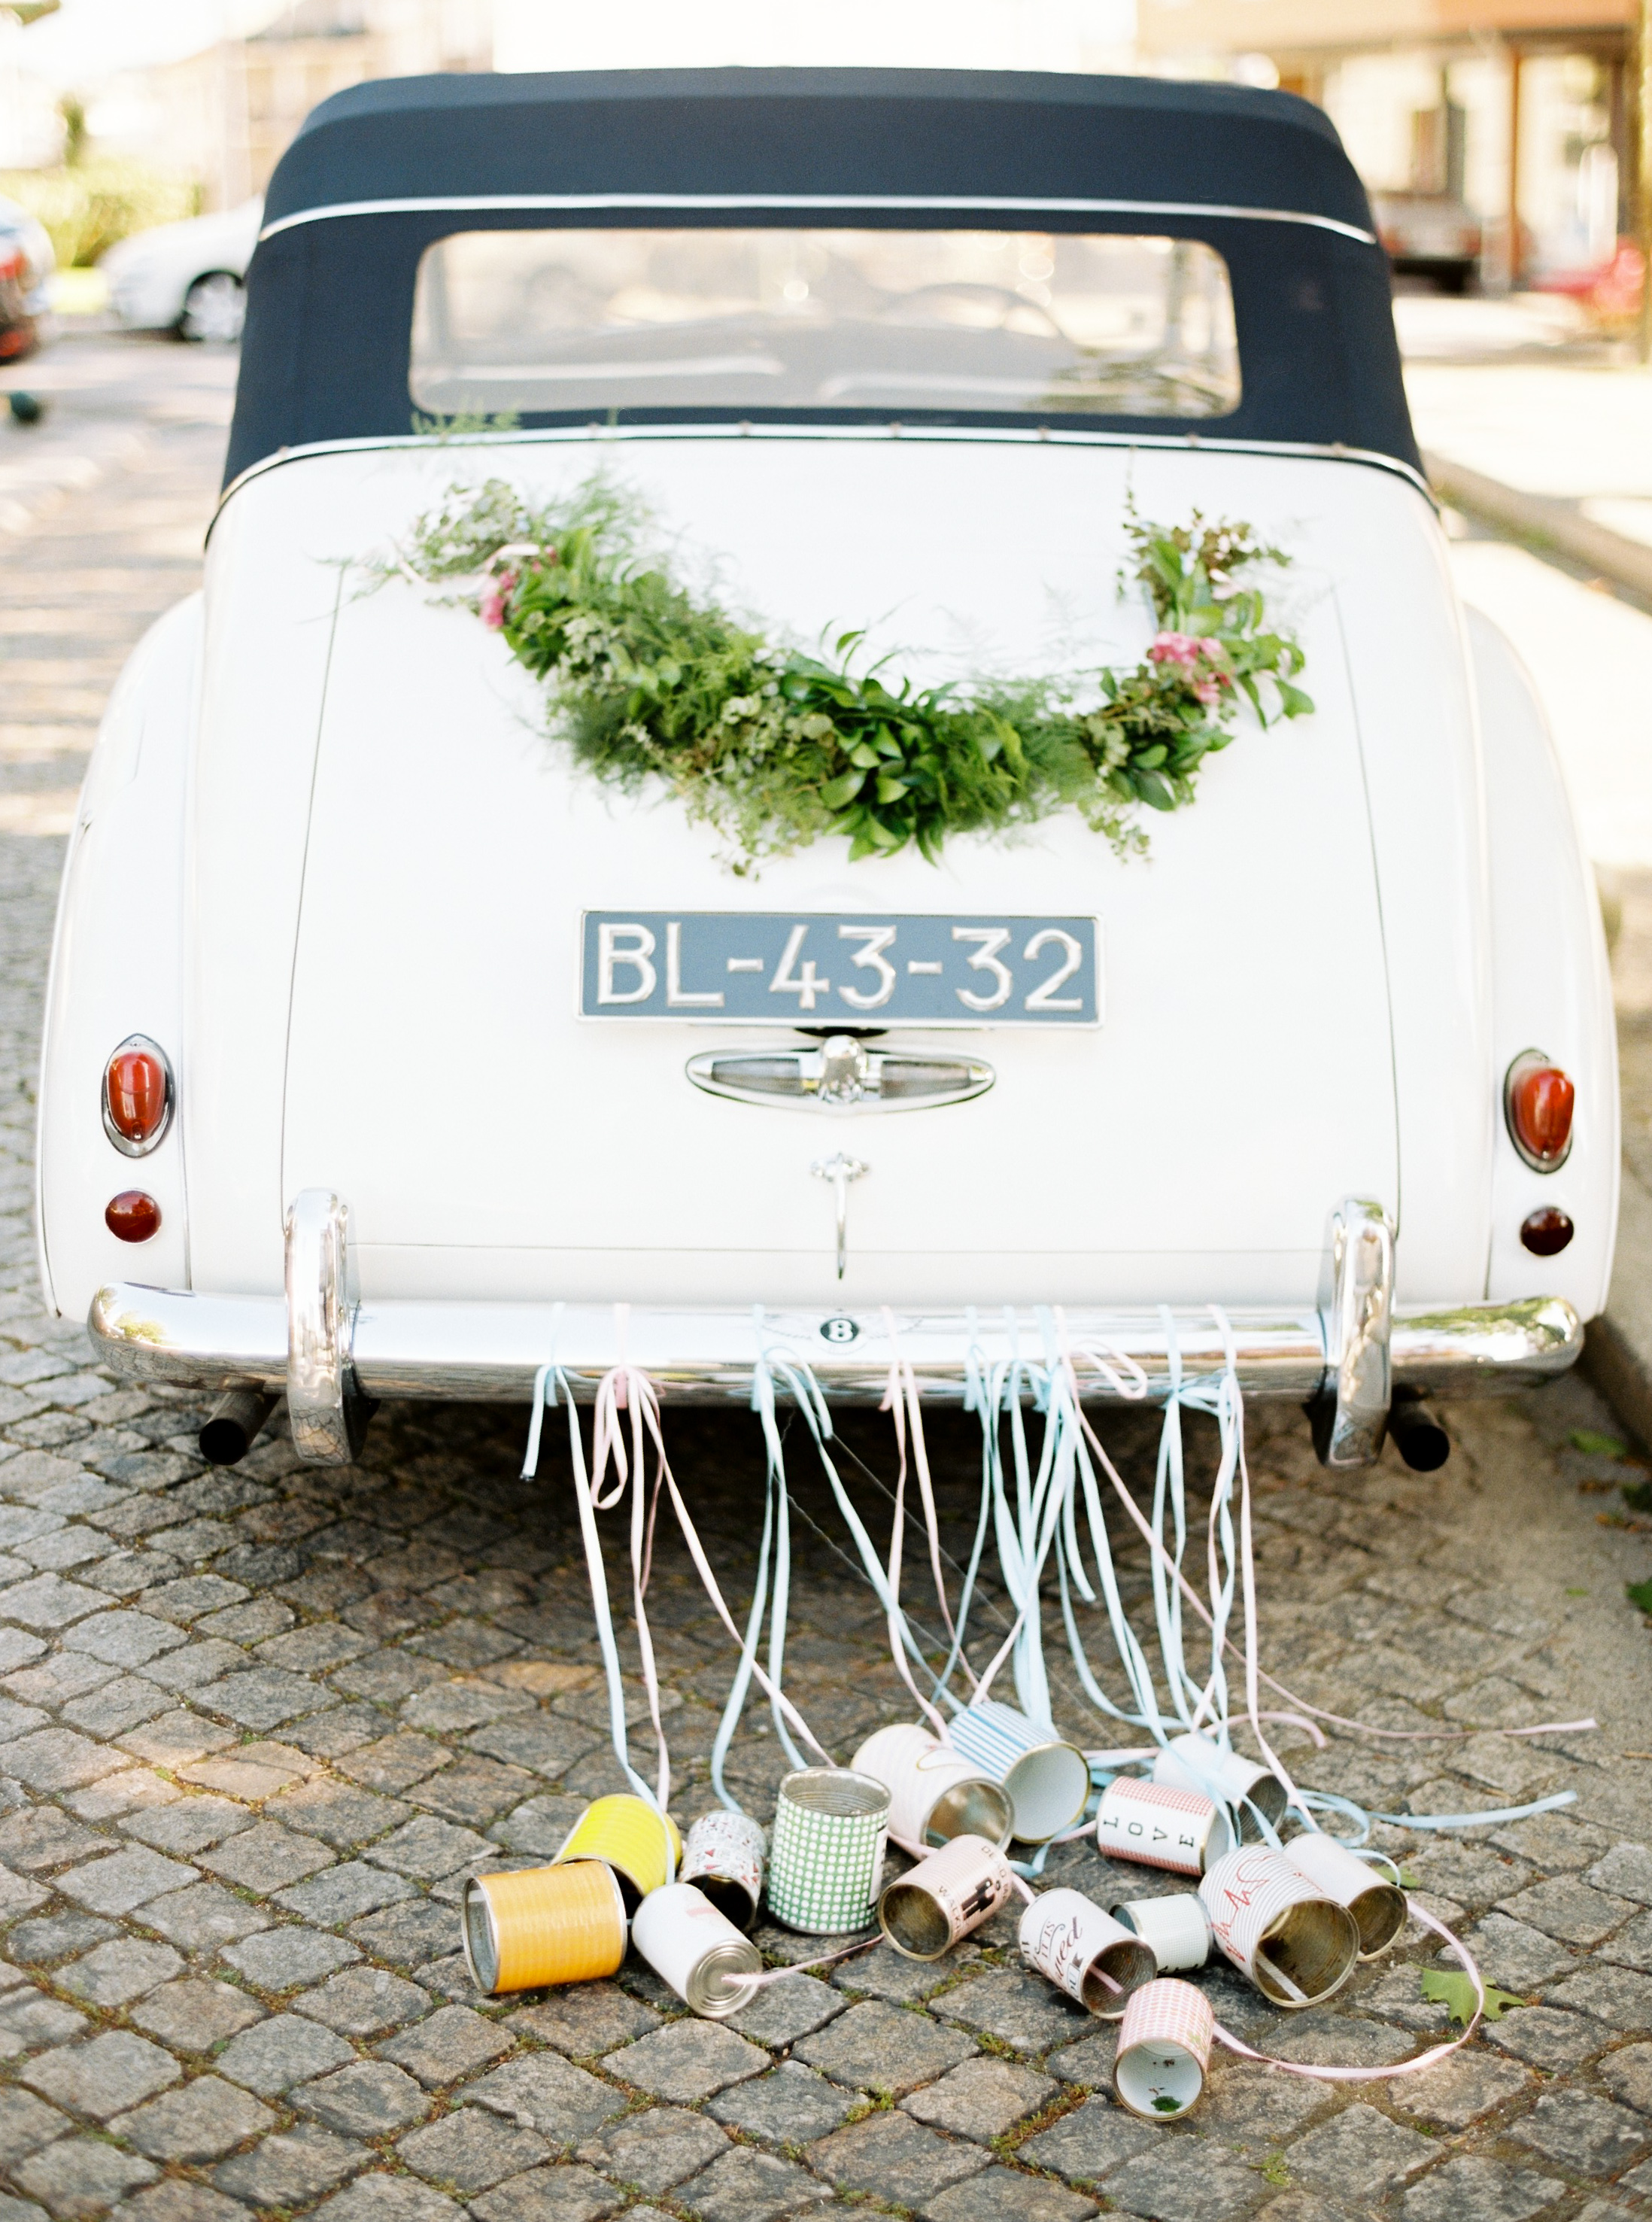 Wedding Planners Share Their Favorite Ways to Decorate a Getaway Car